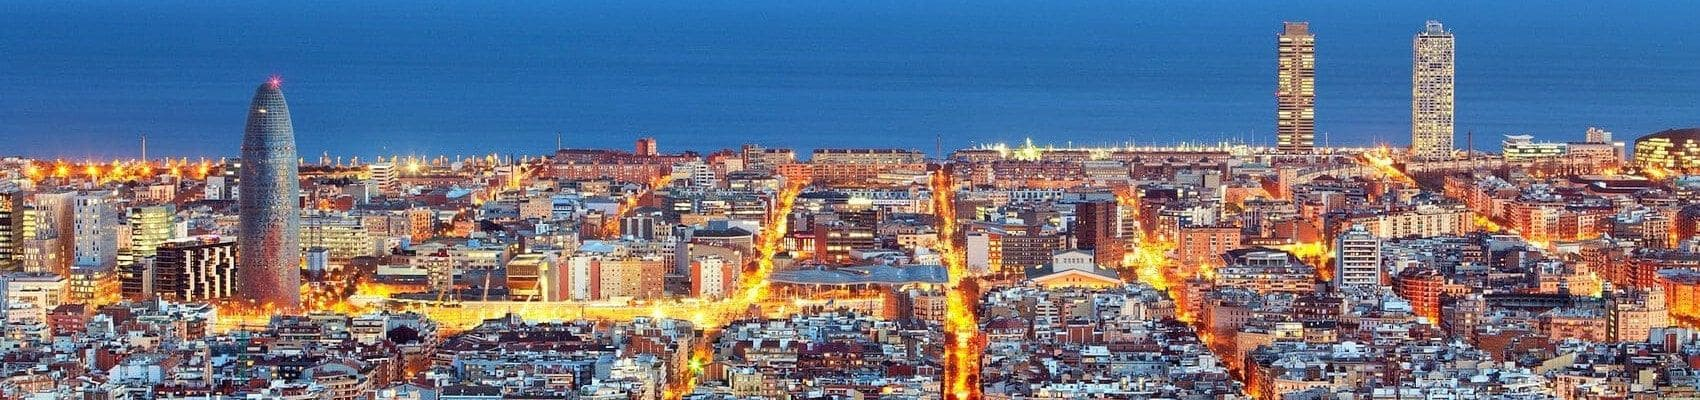 Aerial photography of Barcelona with the sea in the background.